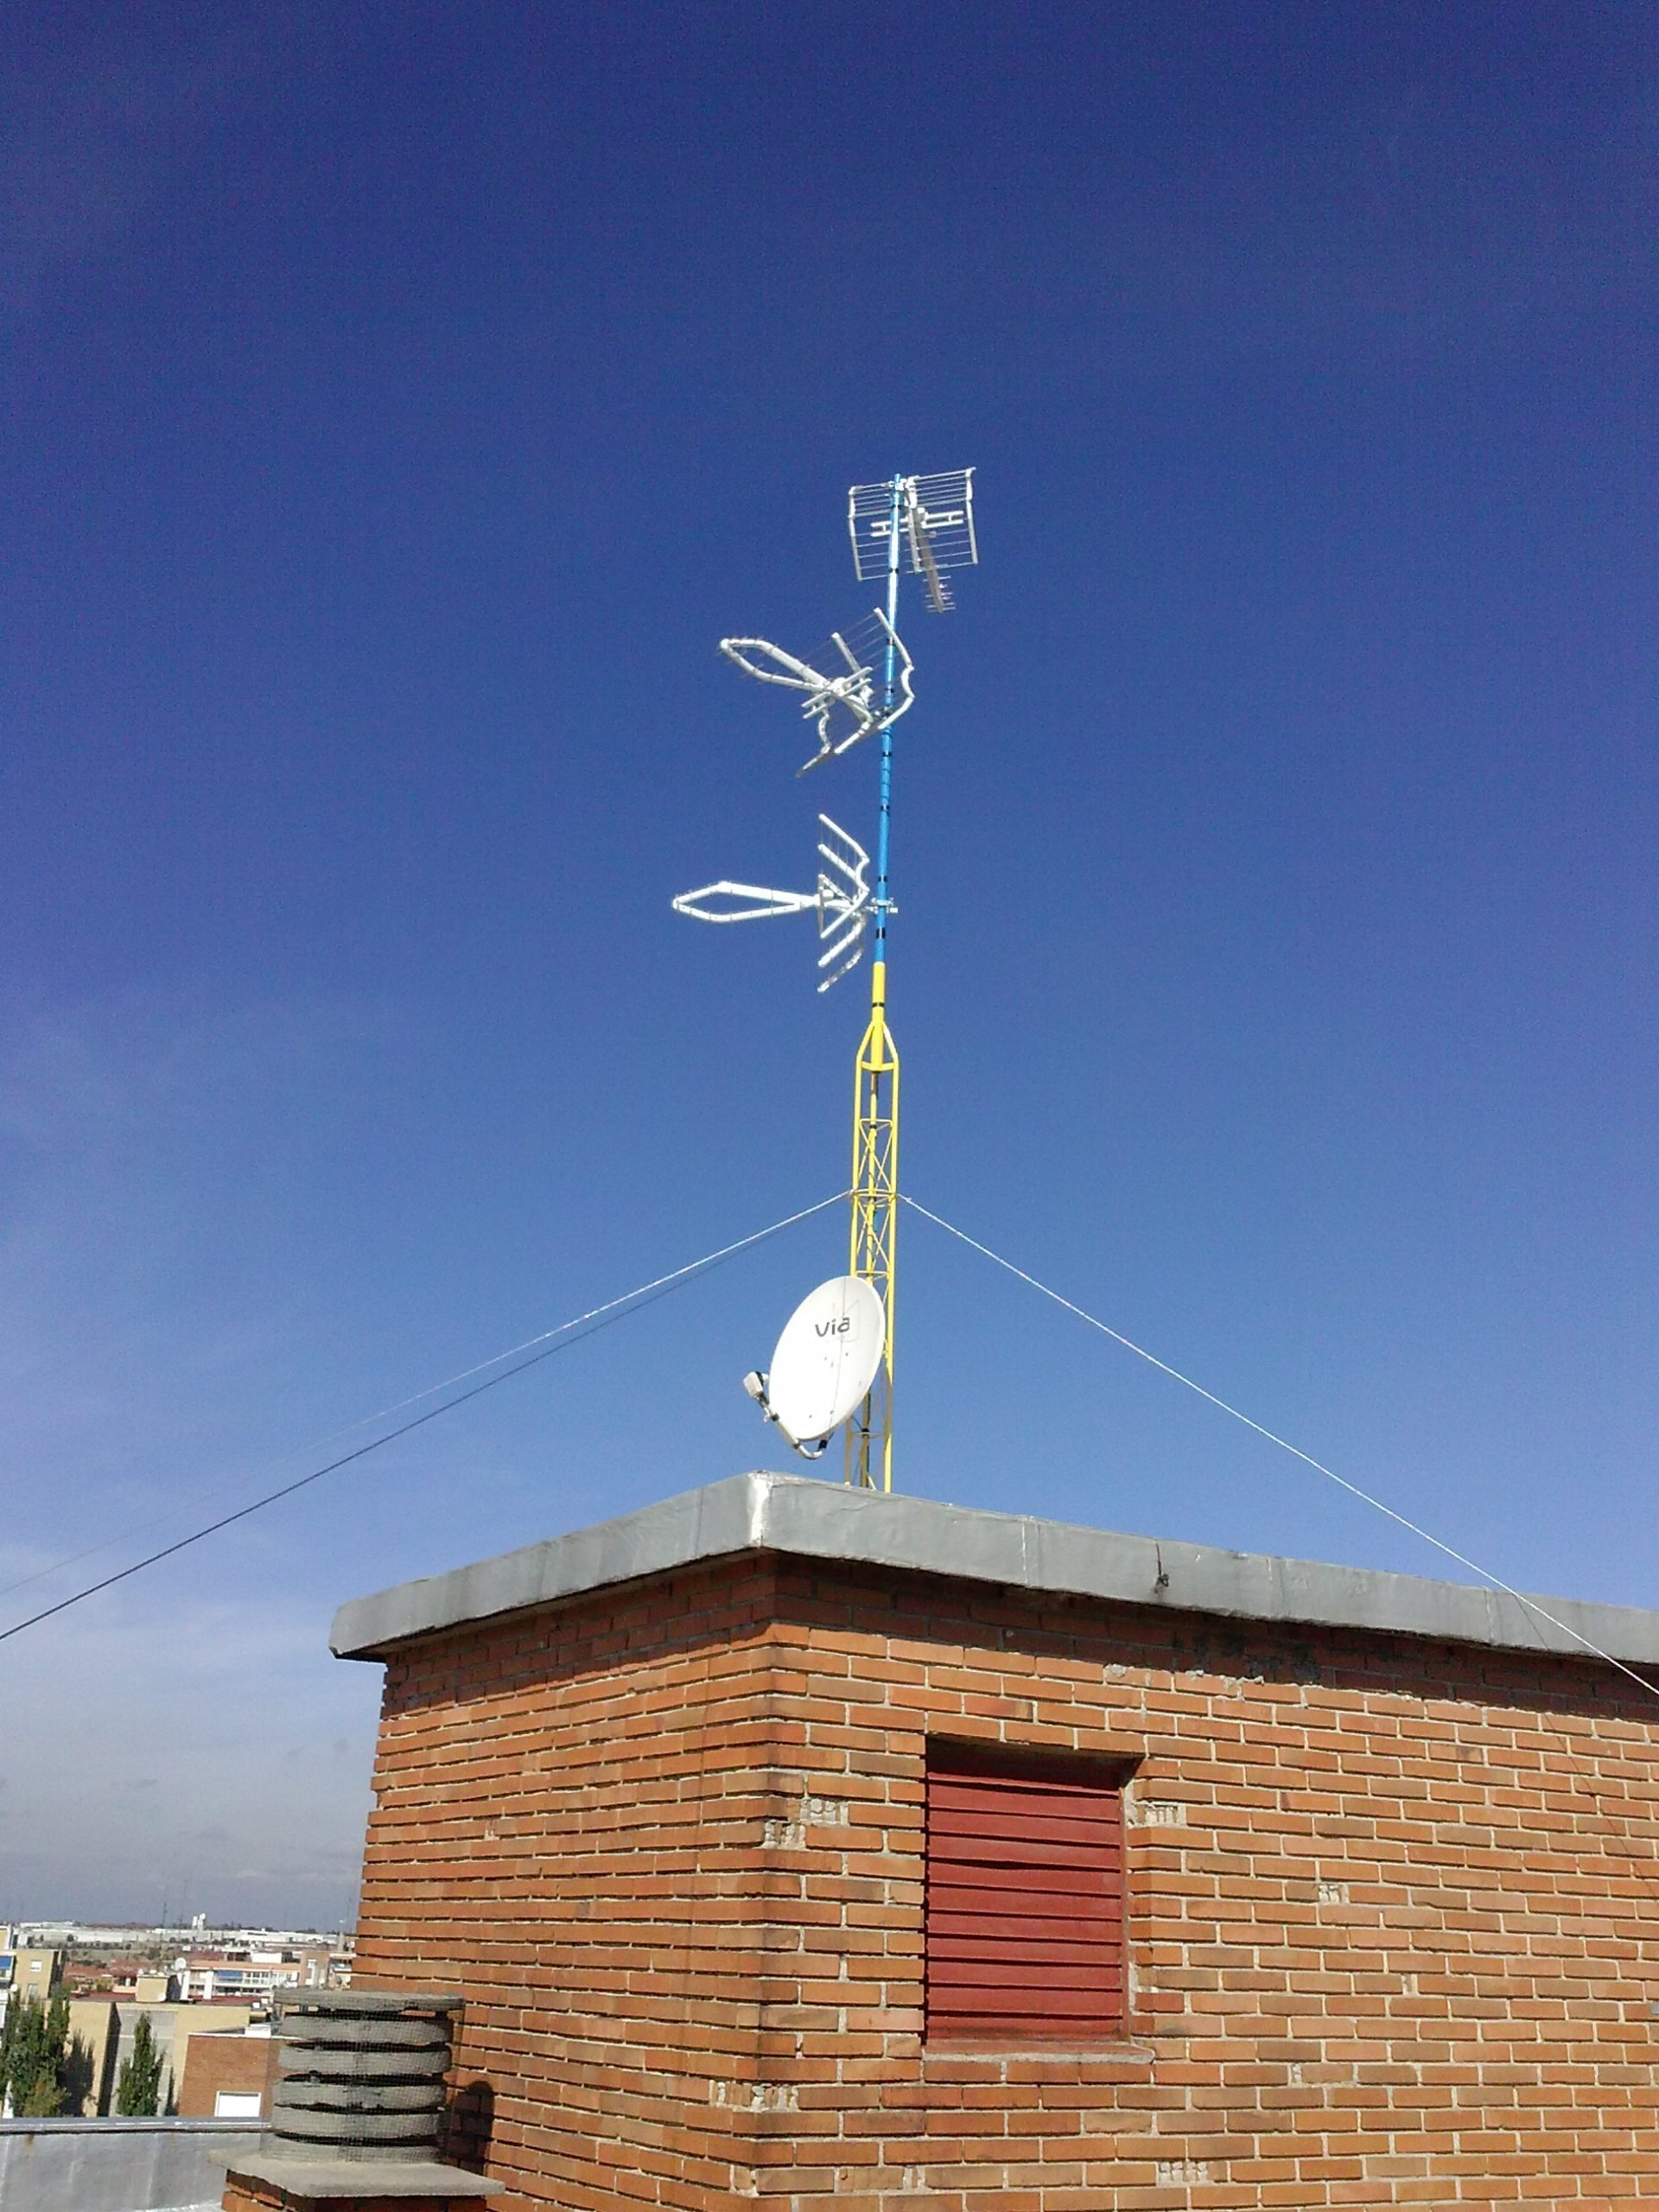 Torreta de antena tv RV-1